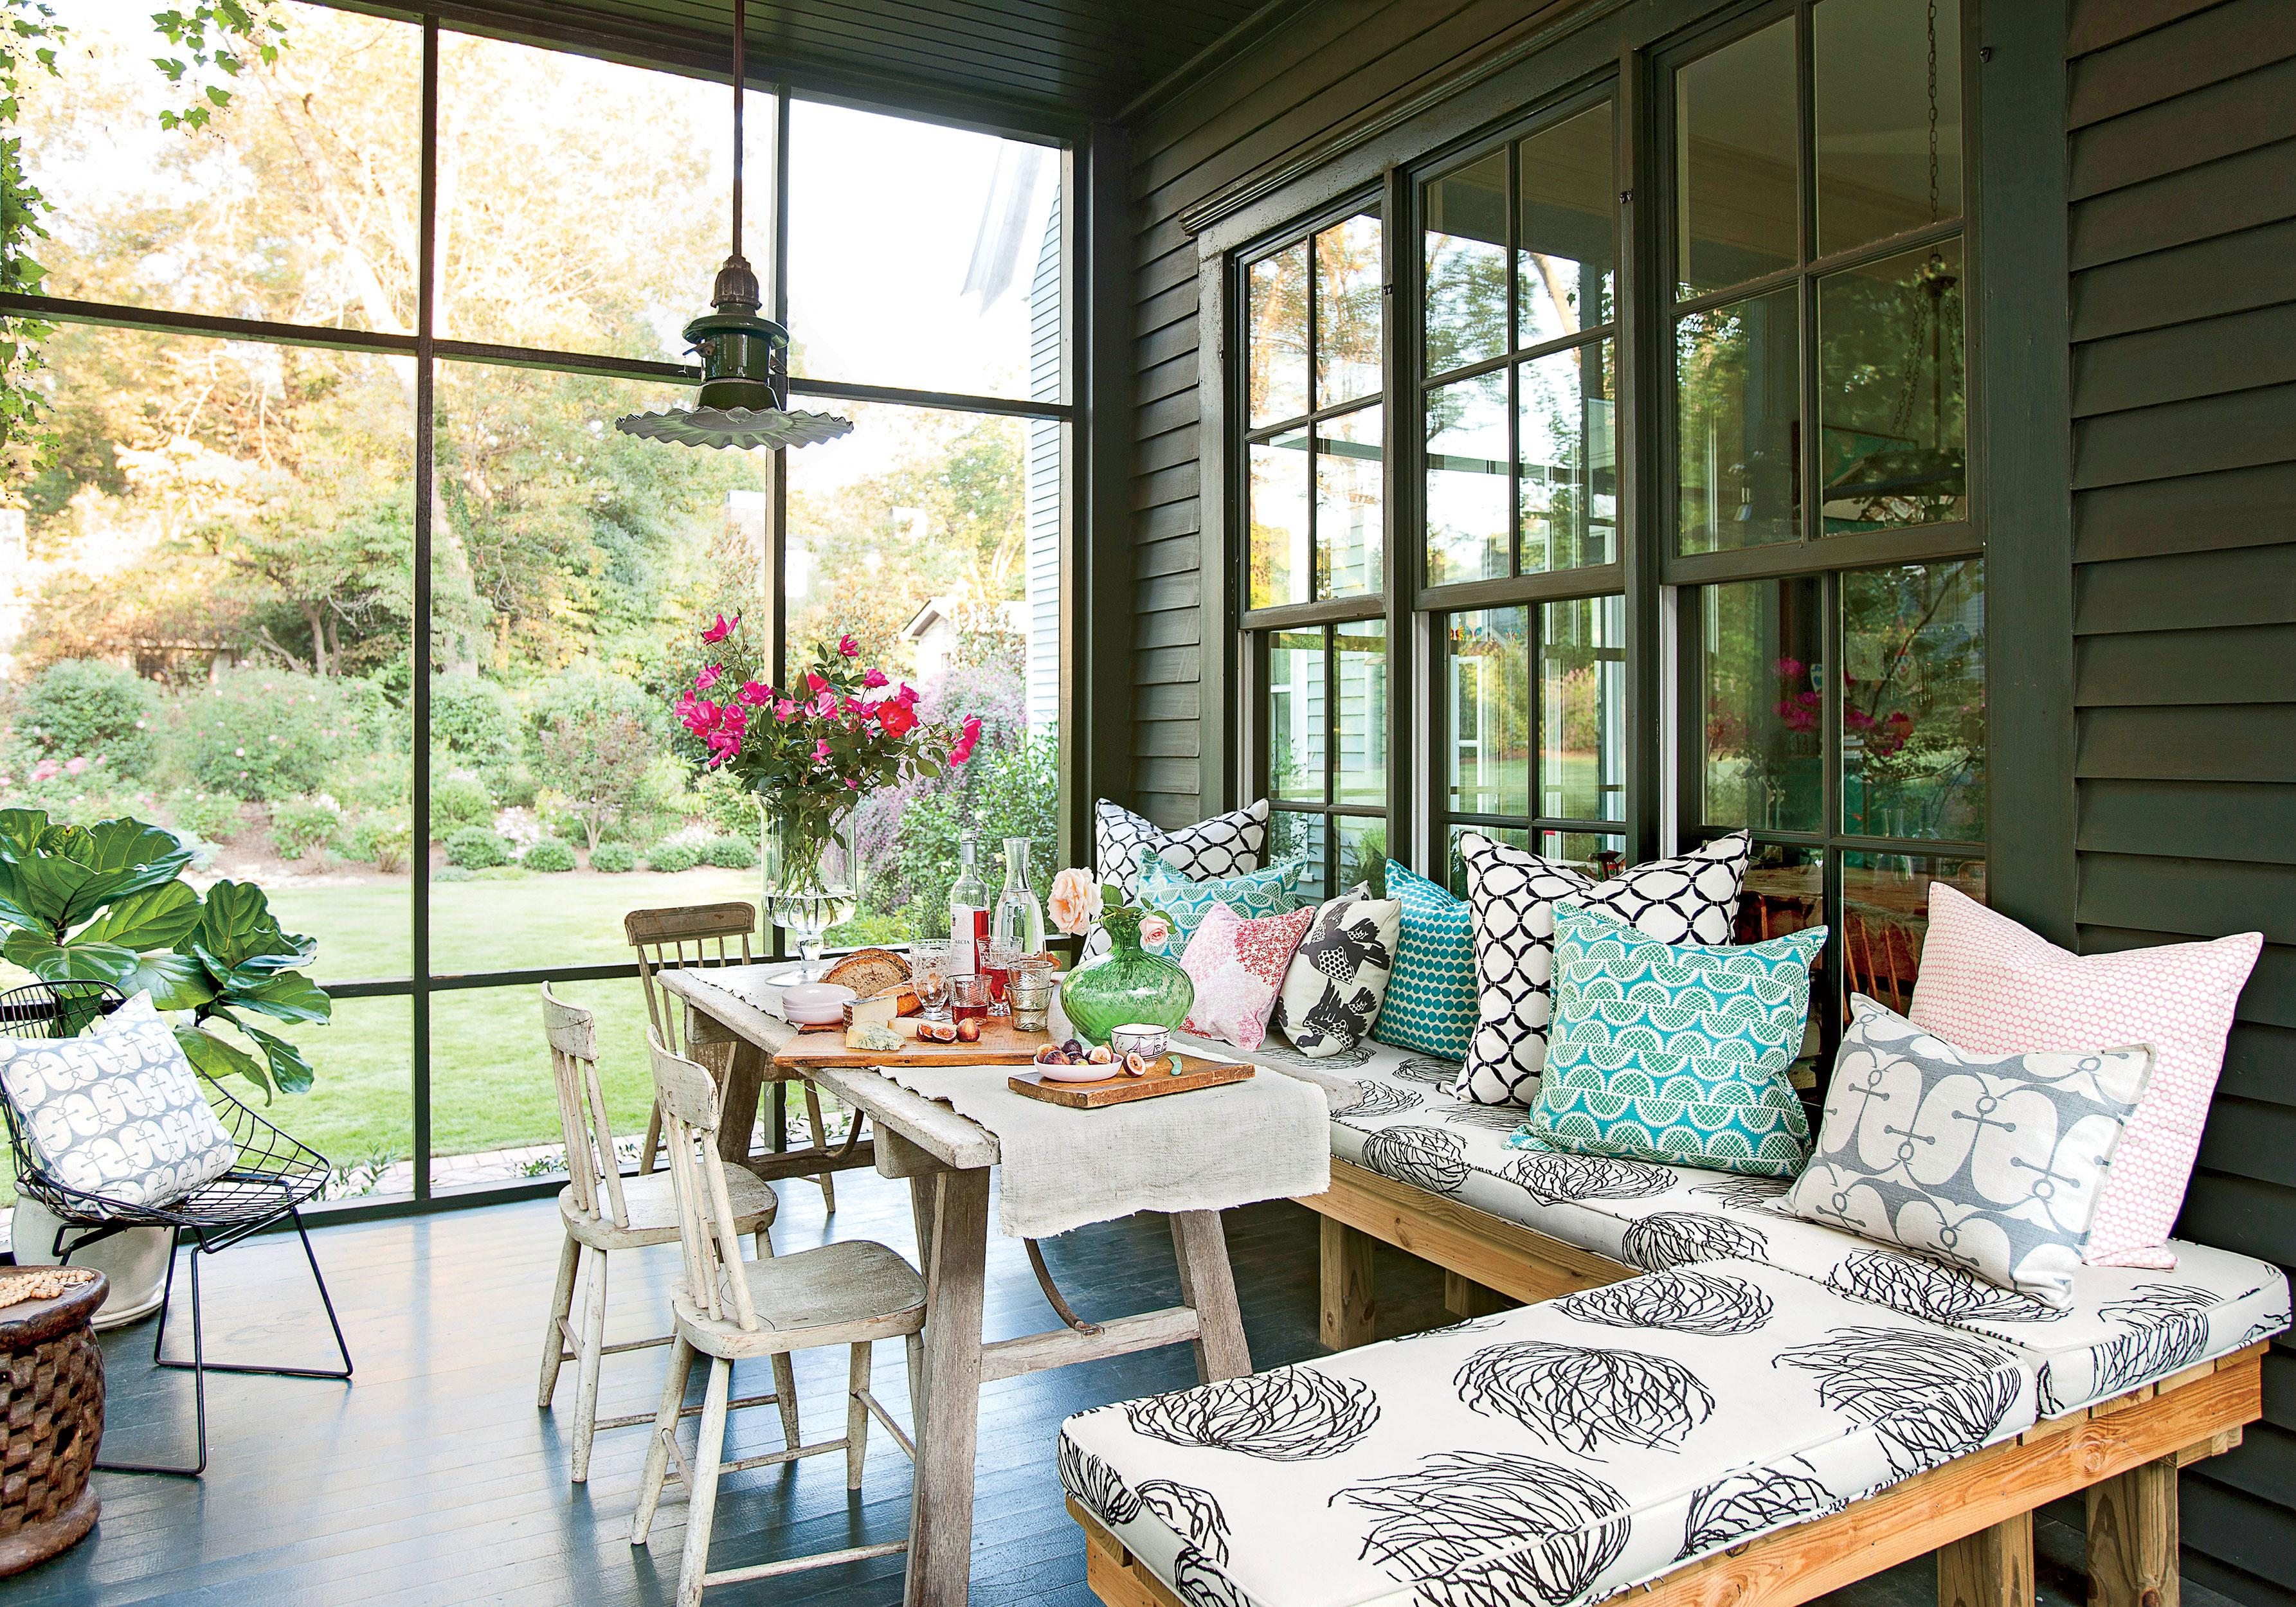 <p>A small table in the center of this screened-in porch serves as the focal point. It's right off the kitchen making it a great spot for overflow when entertaining.</p>